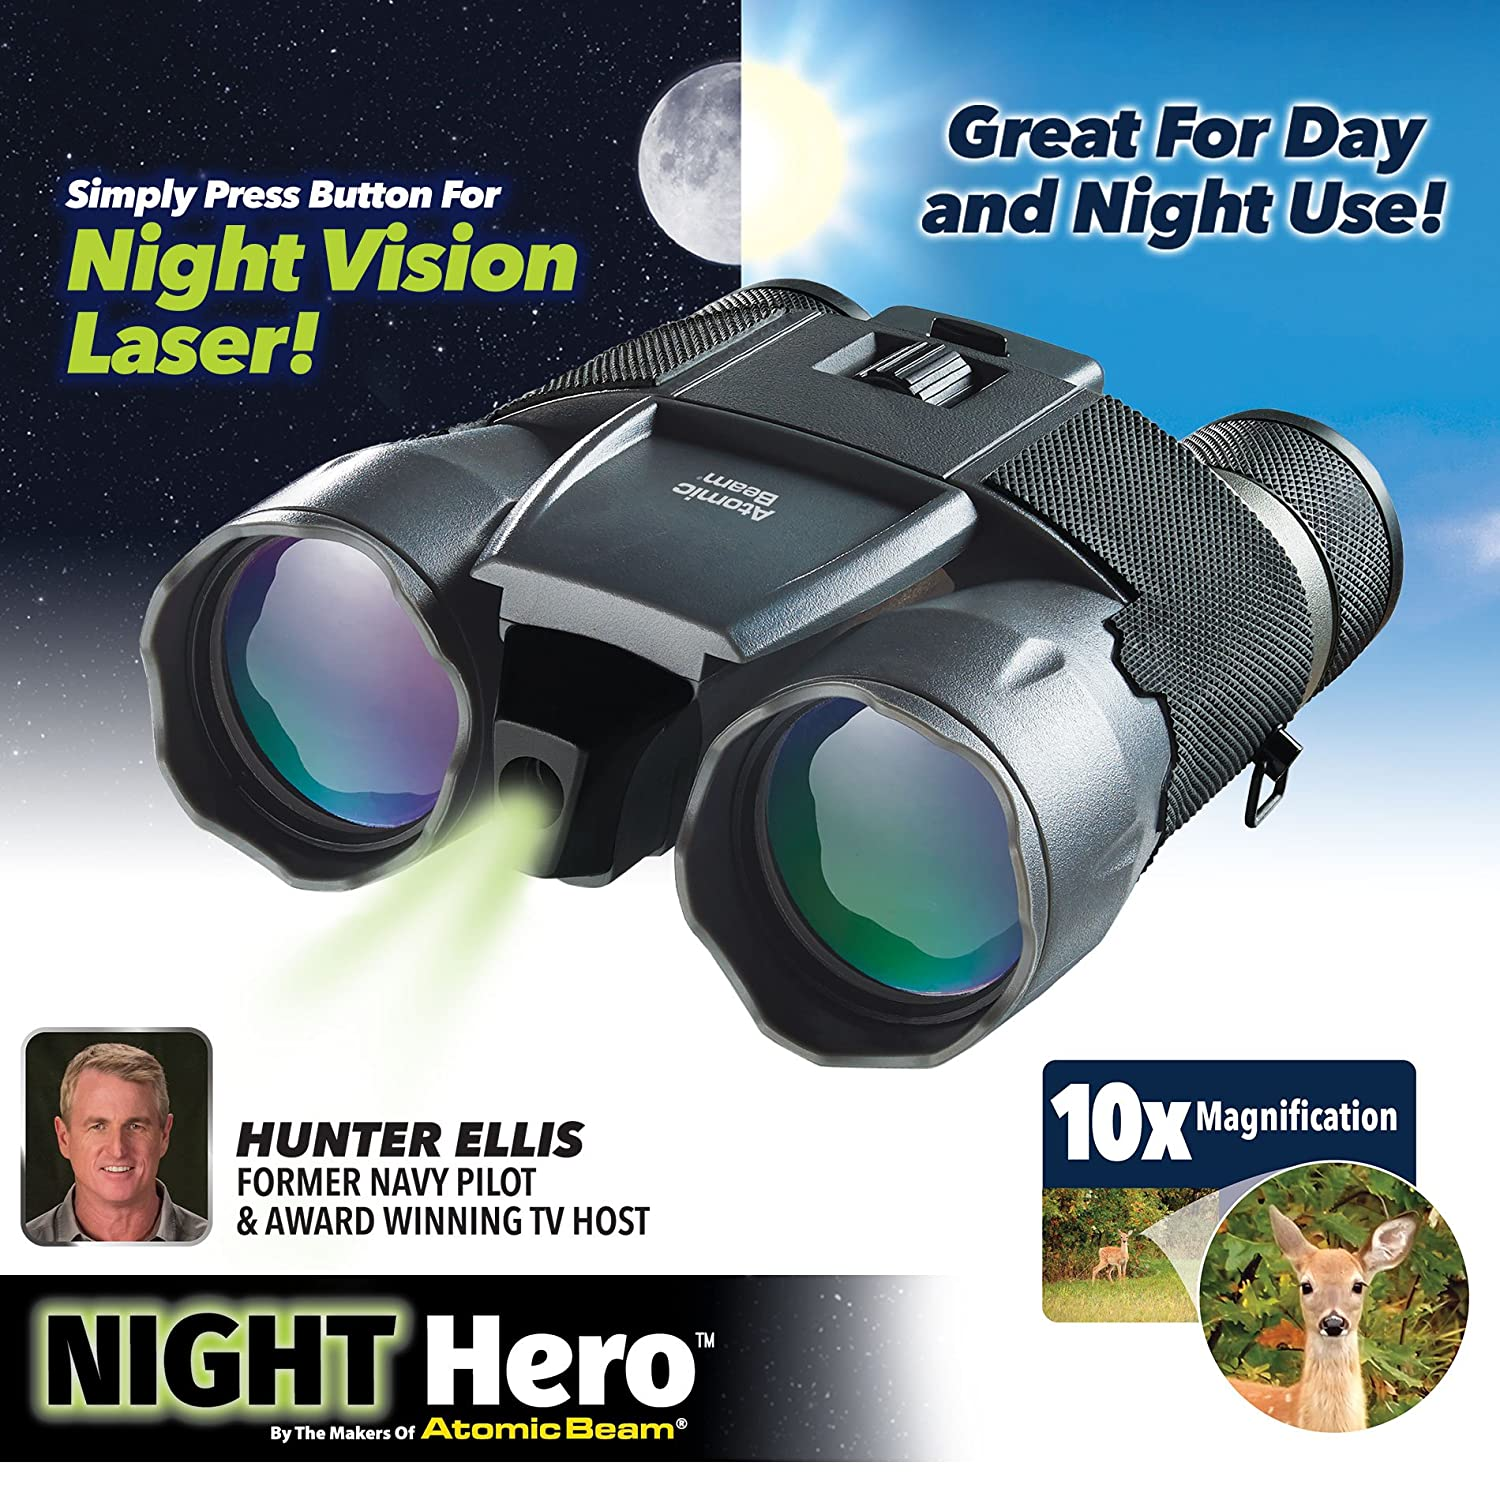 Reveals Objects 150-Yards Away 10x Magnification Full Range of Focal Adjustments Atomic Beam Official As Seen On TV Night Hero Binoculars by BulbHead Water-Resistant